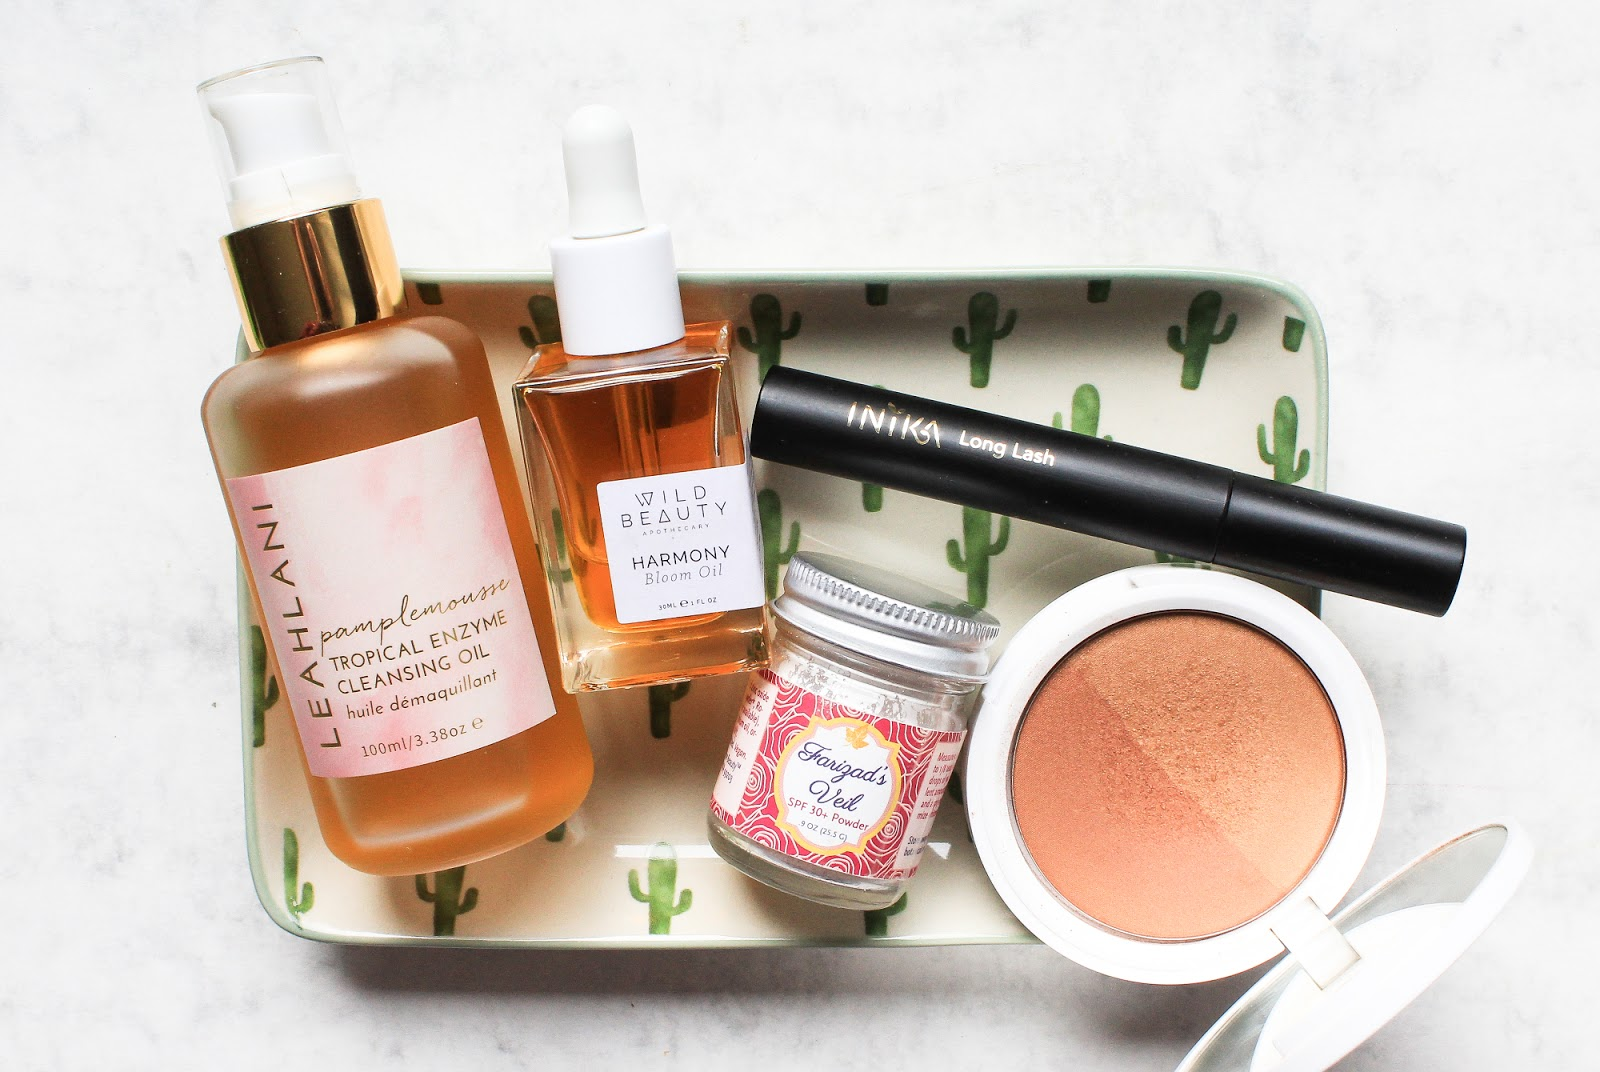 Current Natural and Organic Beauty Favourites. Leahlani Pamplemousse, Earthwise Beauty Farizad's Veil, Wild Beauty Apothecary Harmony Bloom Oil, Inika Long Lash mascara, Ere Perez Rice Powder Bronzer in Tulum